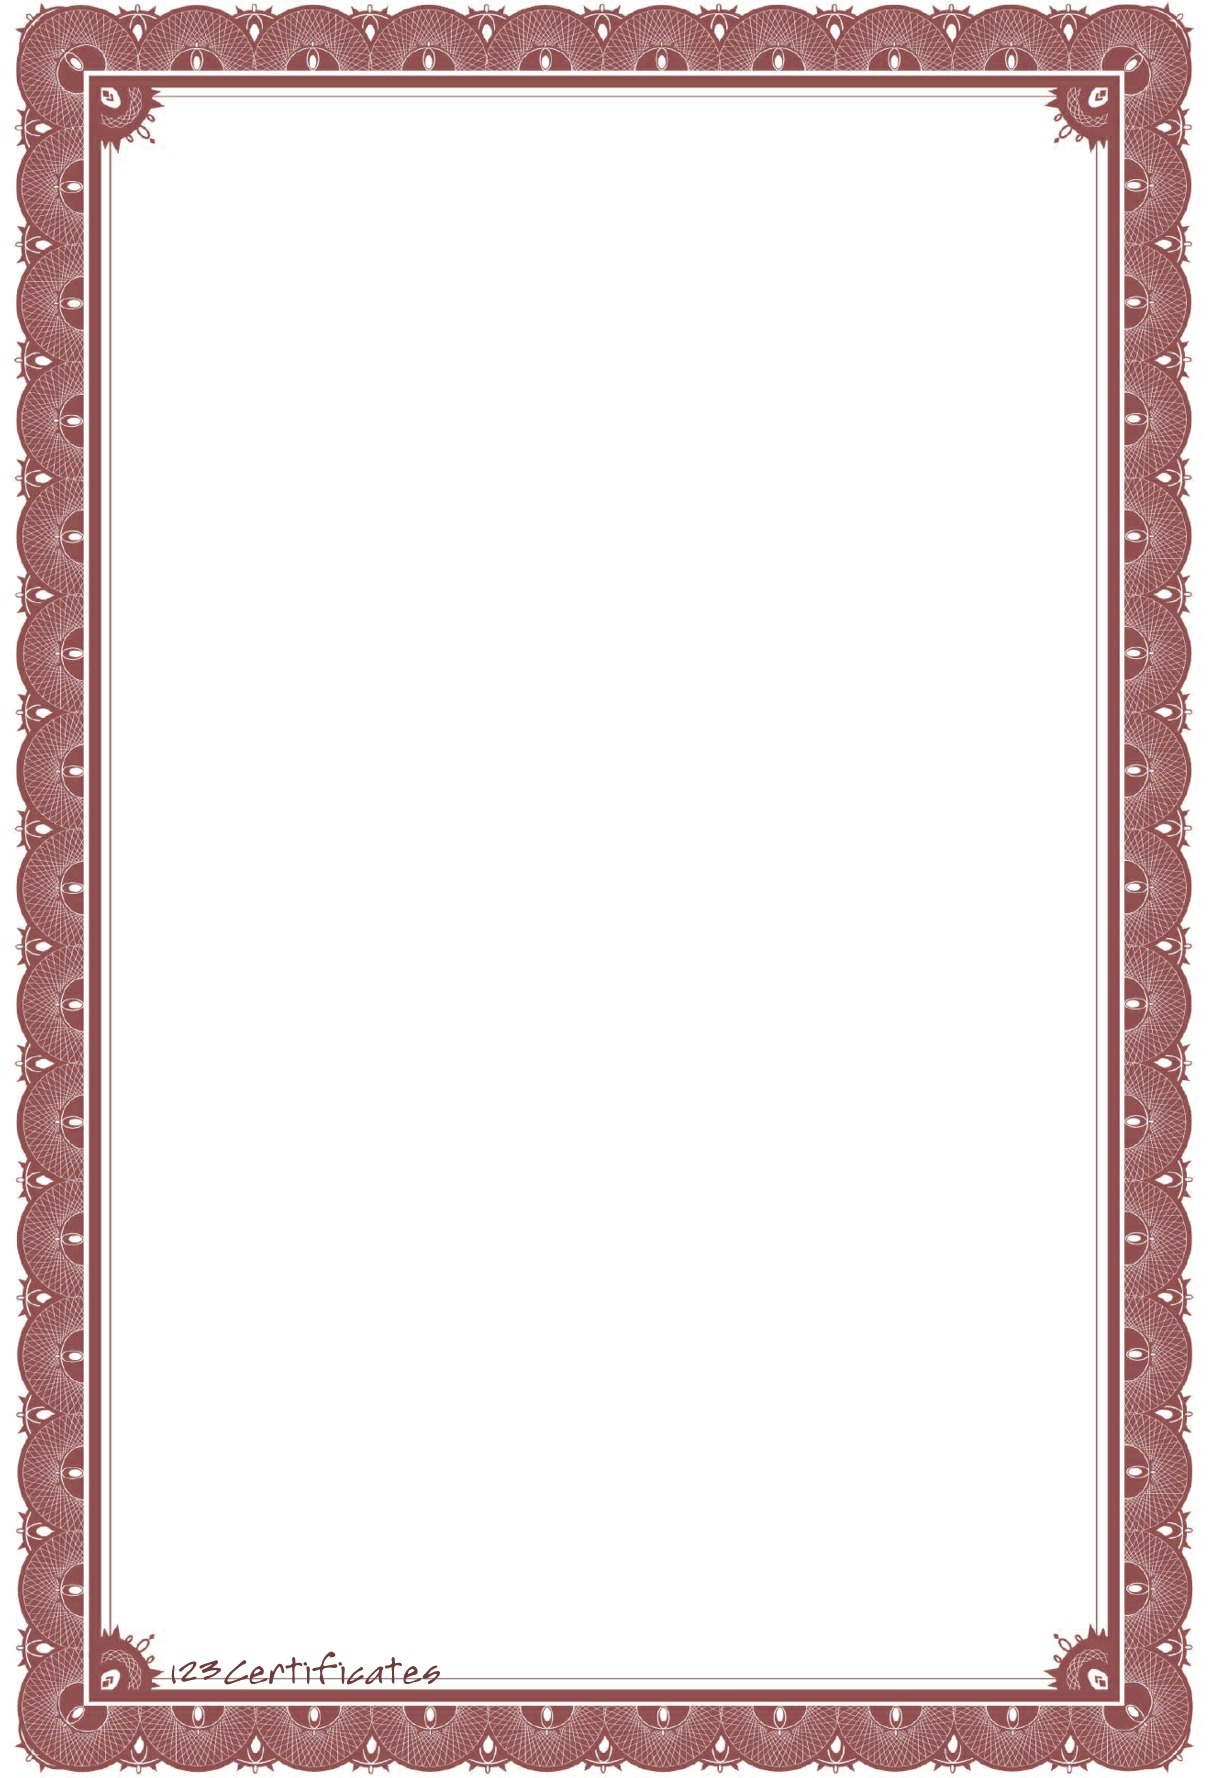 Certificate Border Template - ClipArt Best